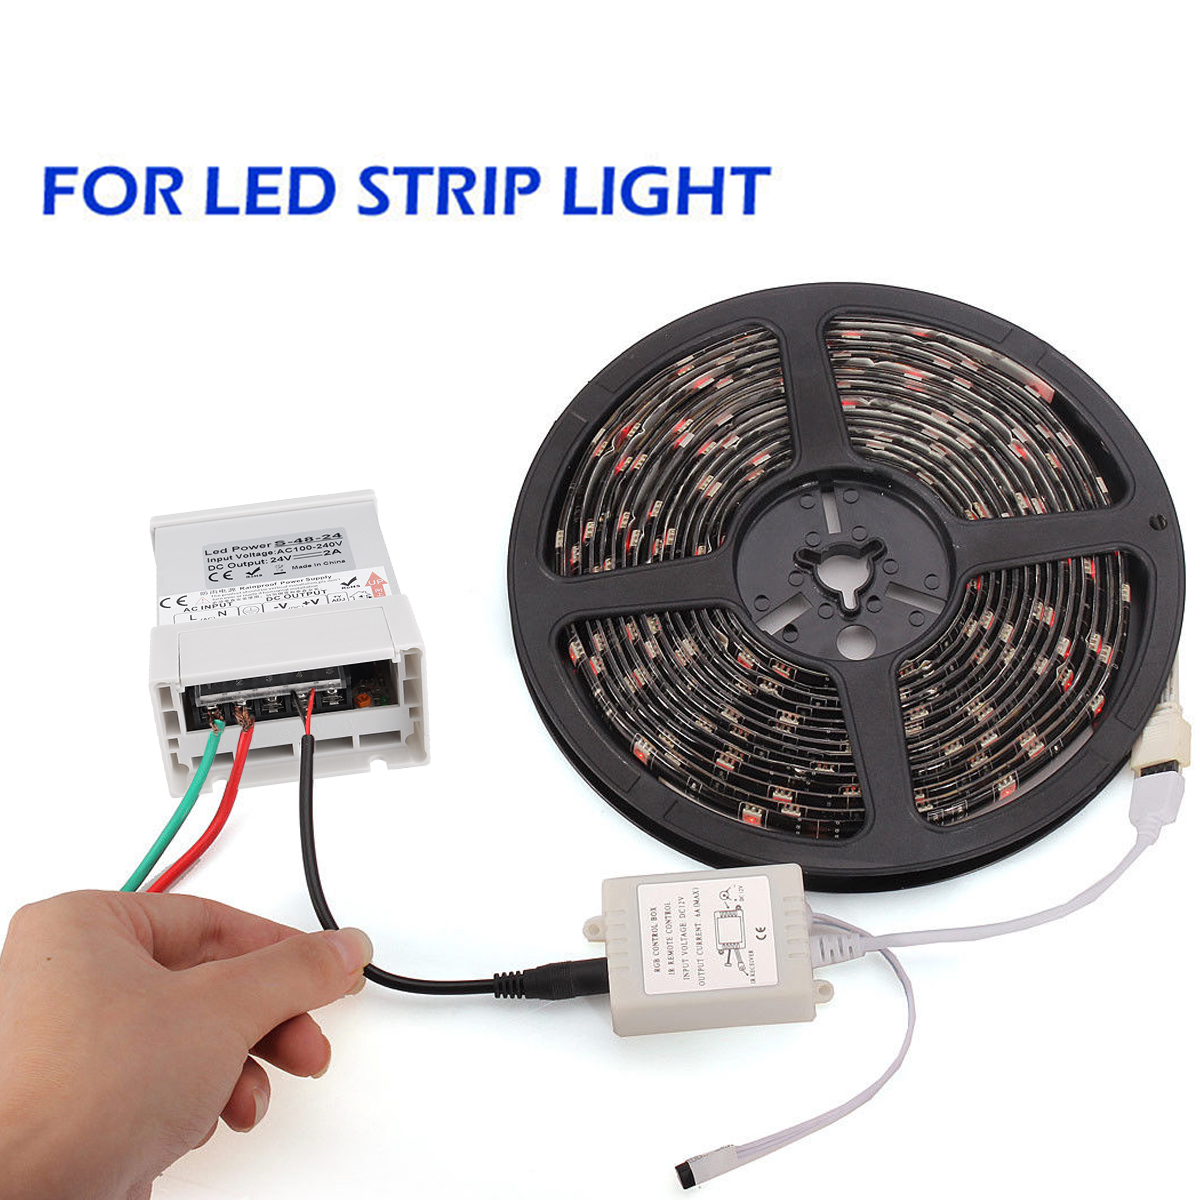 DC 24V Universal Regulated Switching Power Supply Driver LED Strip Light Waterproof 48W-400W